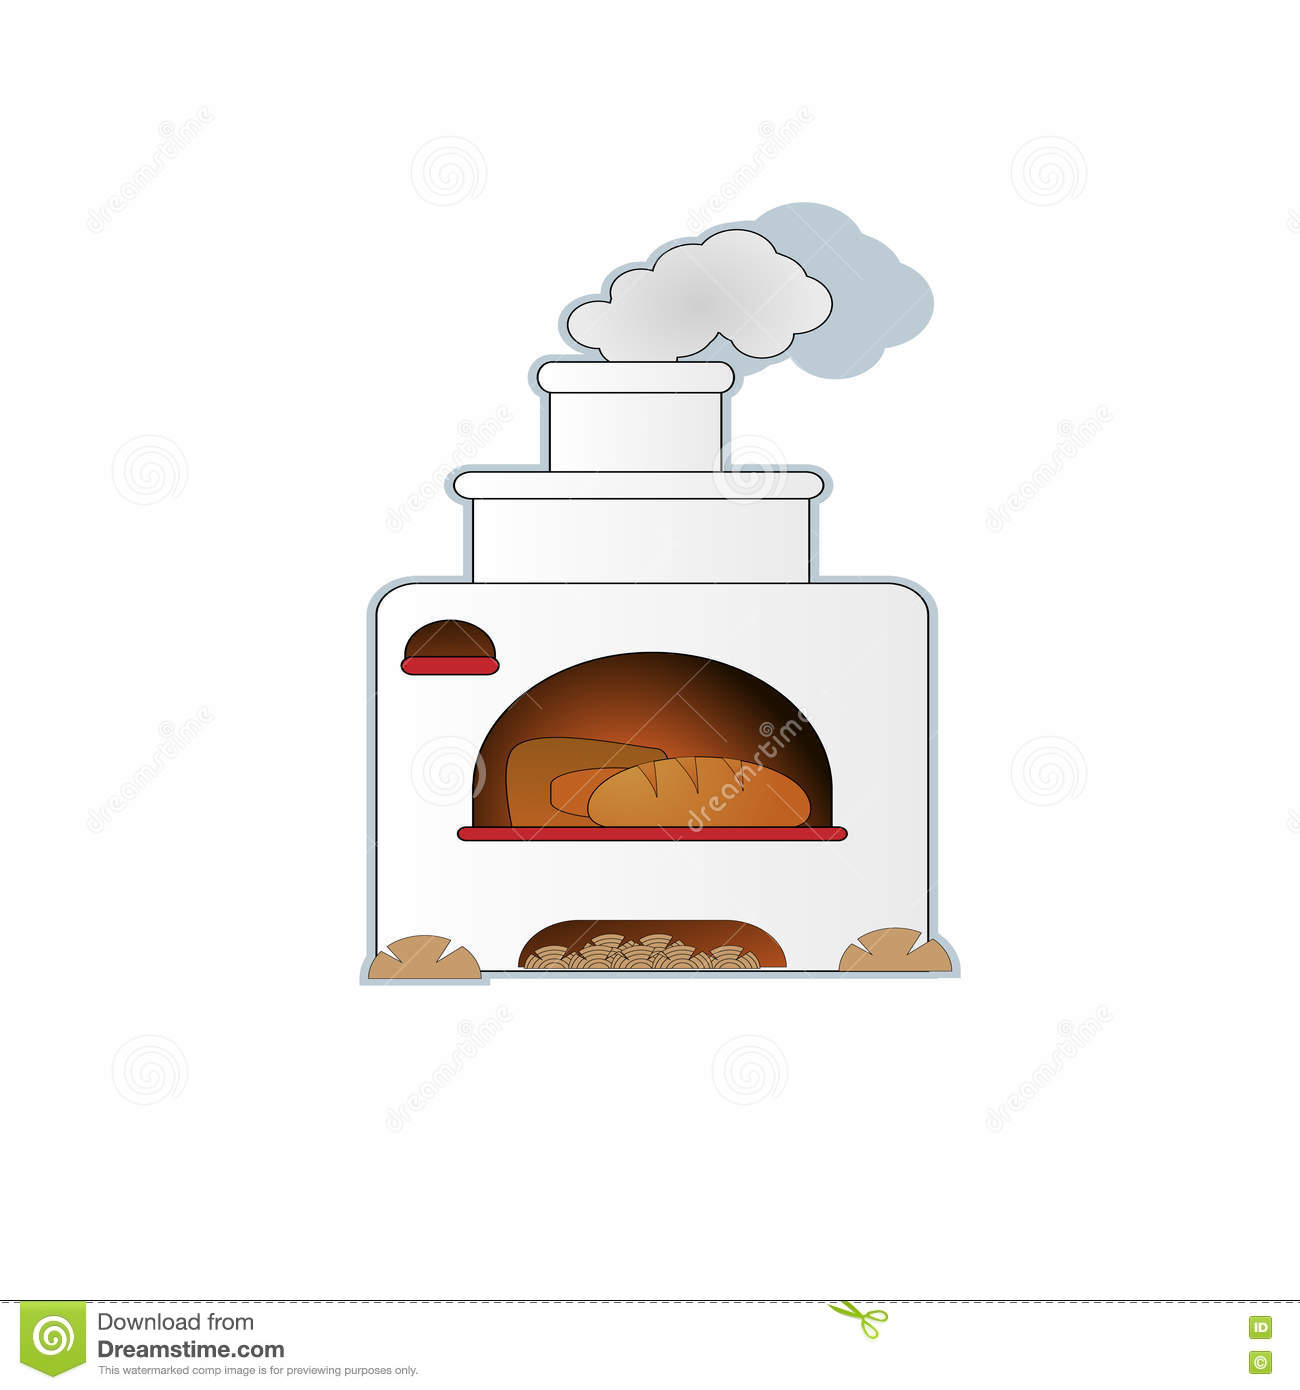 Cartoon Hand Drawn Russian Oven With Bread Stock Vector.